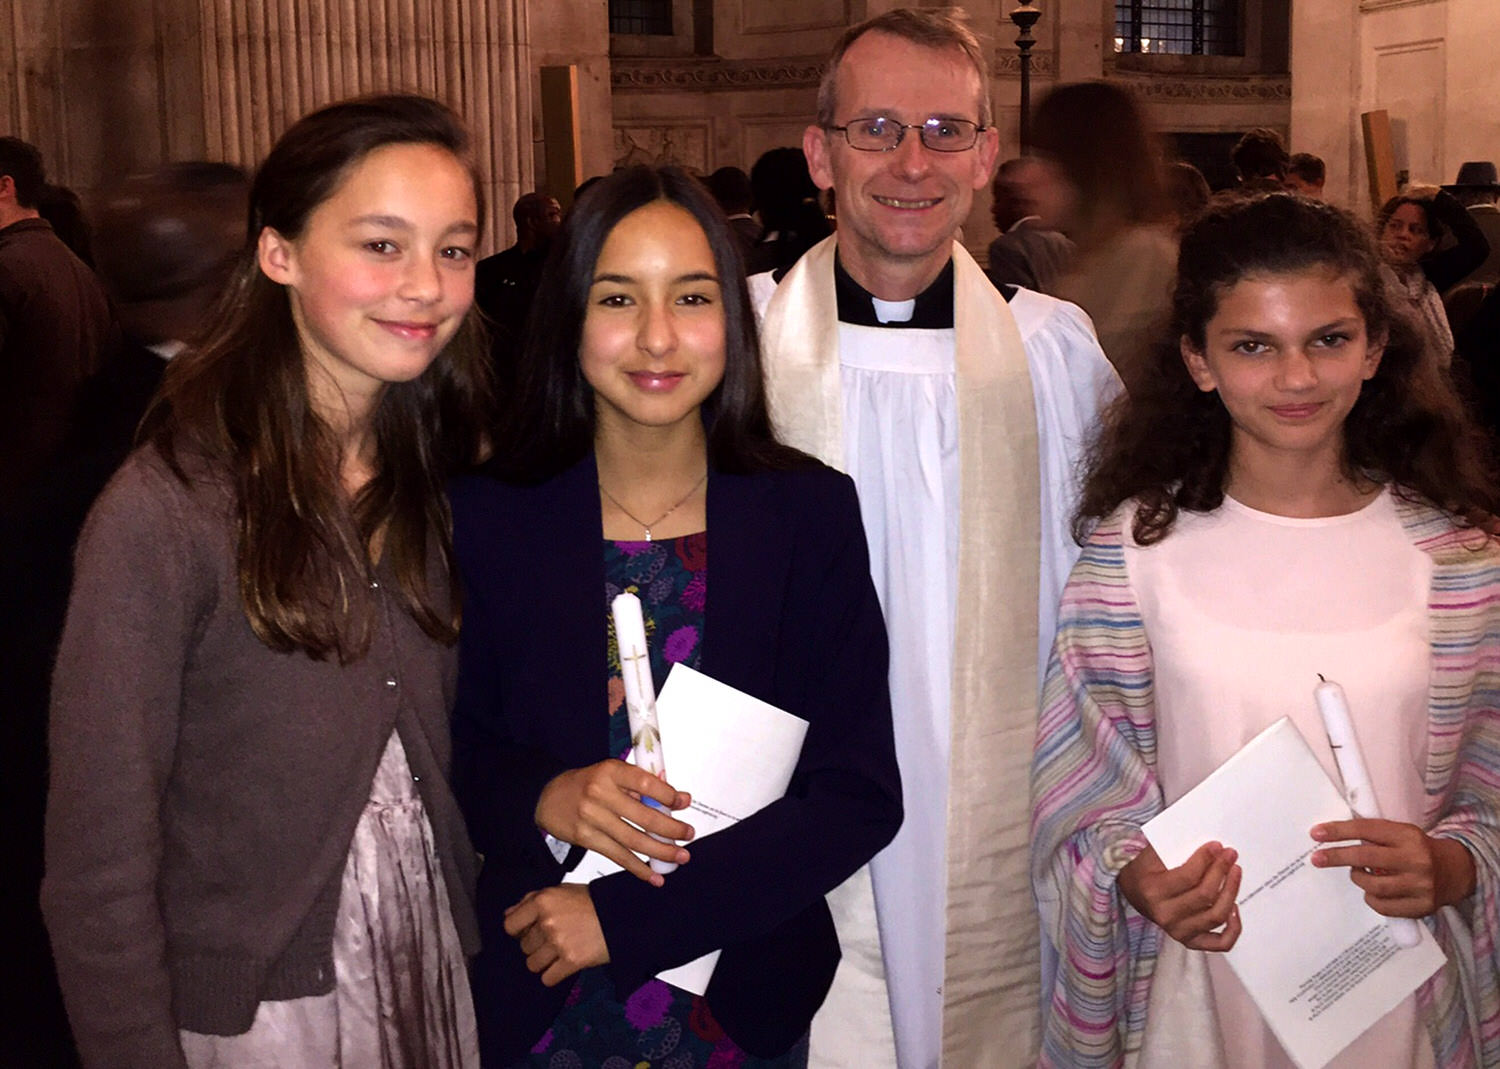 United-Benefice-of-Holland-Park-Church-Services-StG-StJ-Confirmation-Image-No-2.jpg